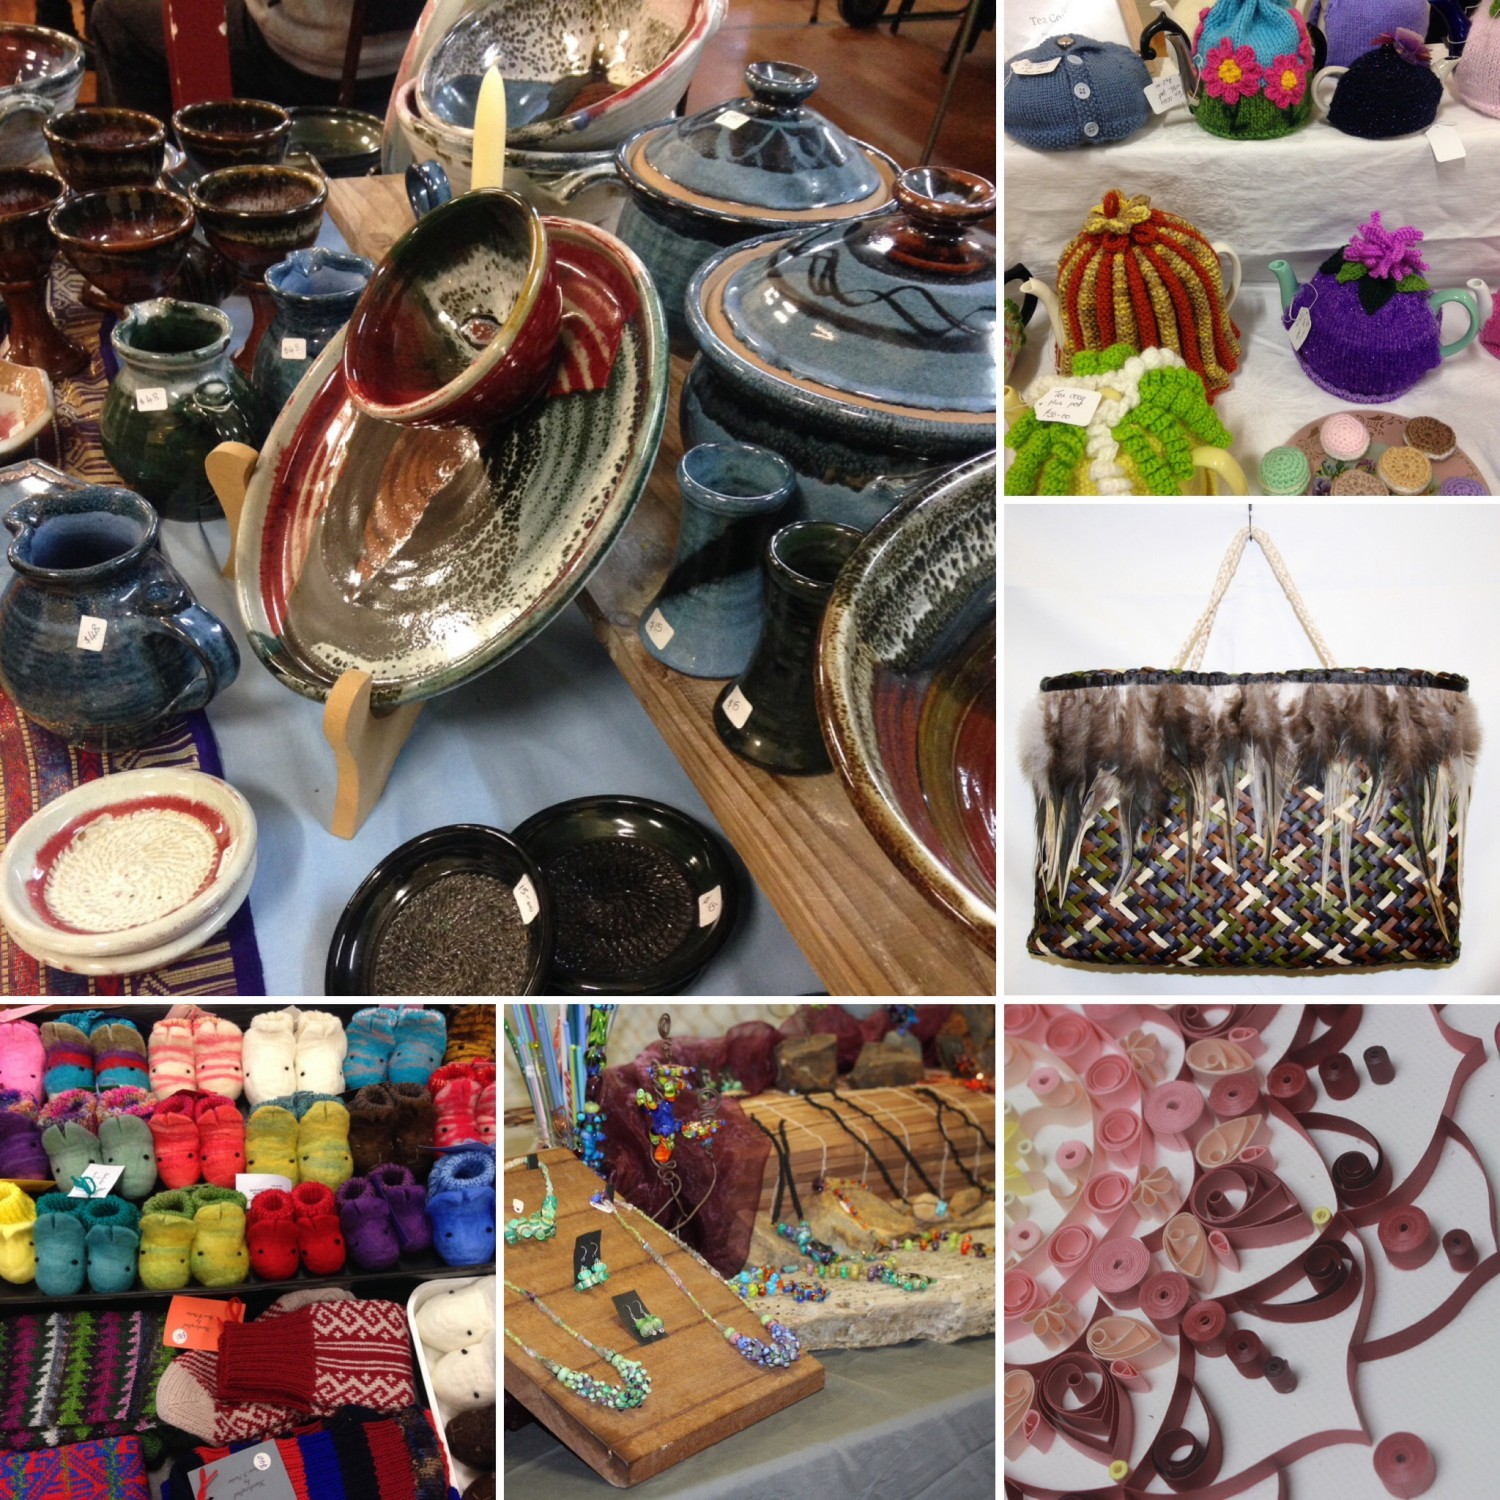 Whitianga events coromandel peninsula art and craft fair for Arts and crafts fairs